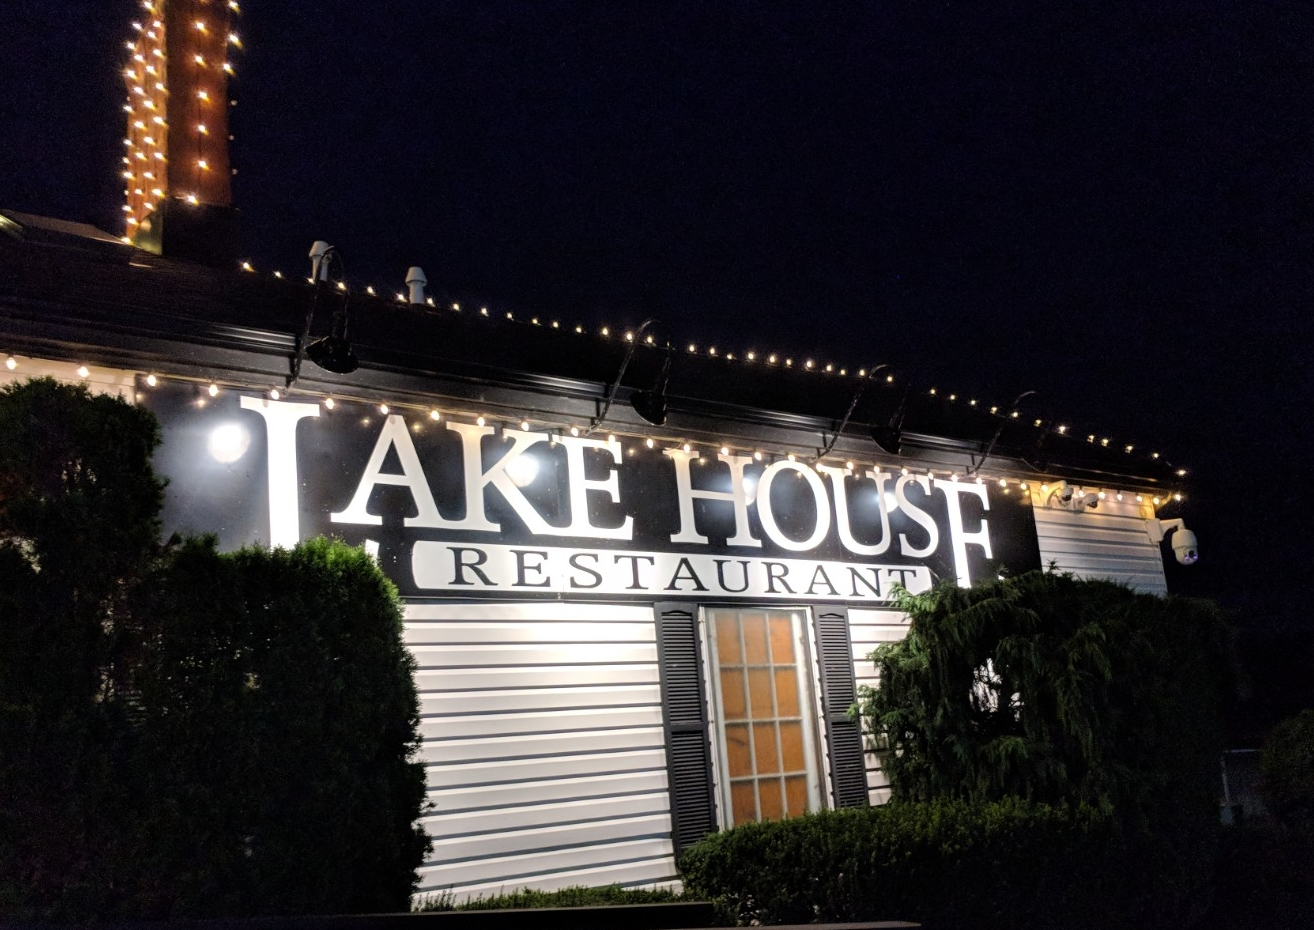 The Lakehouse Restaurant